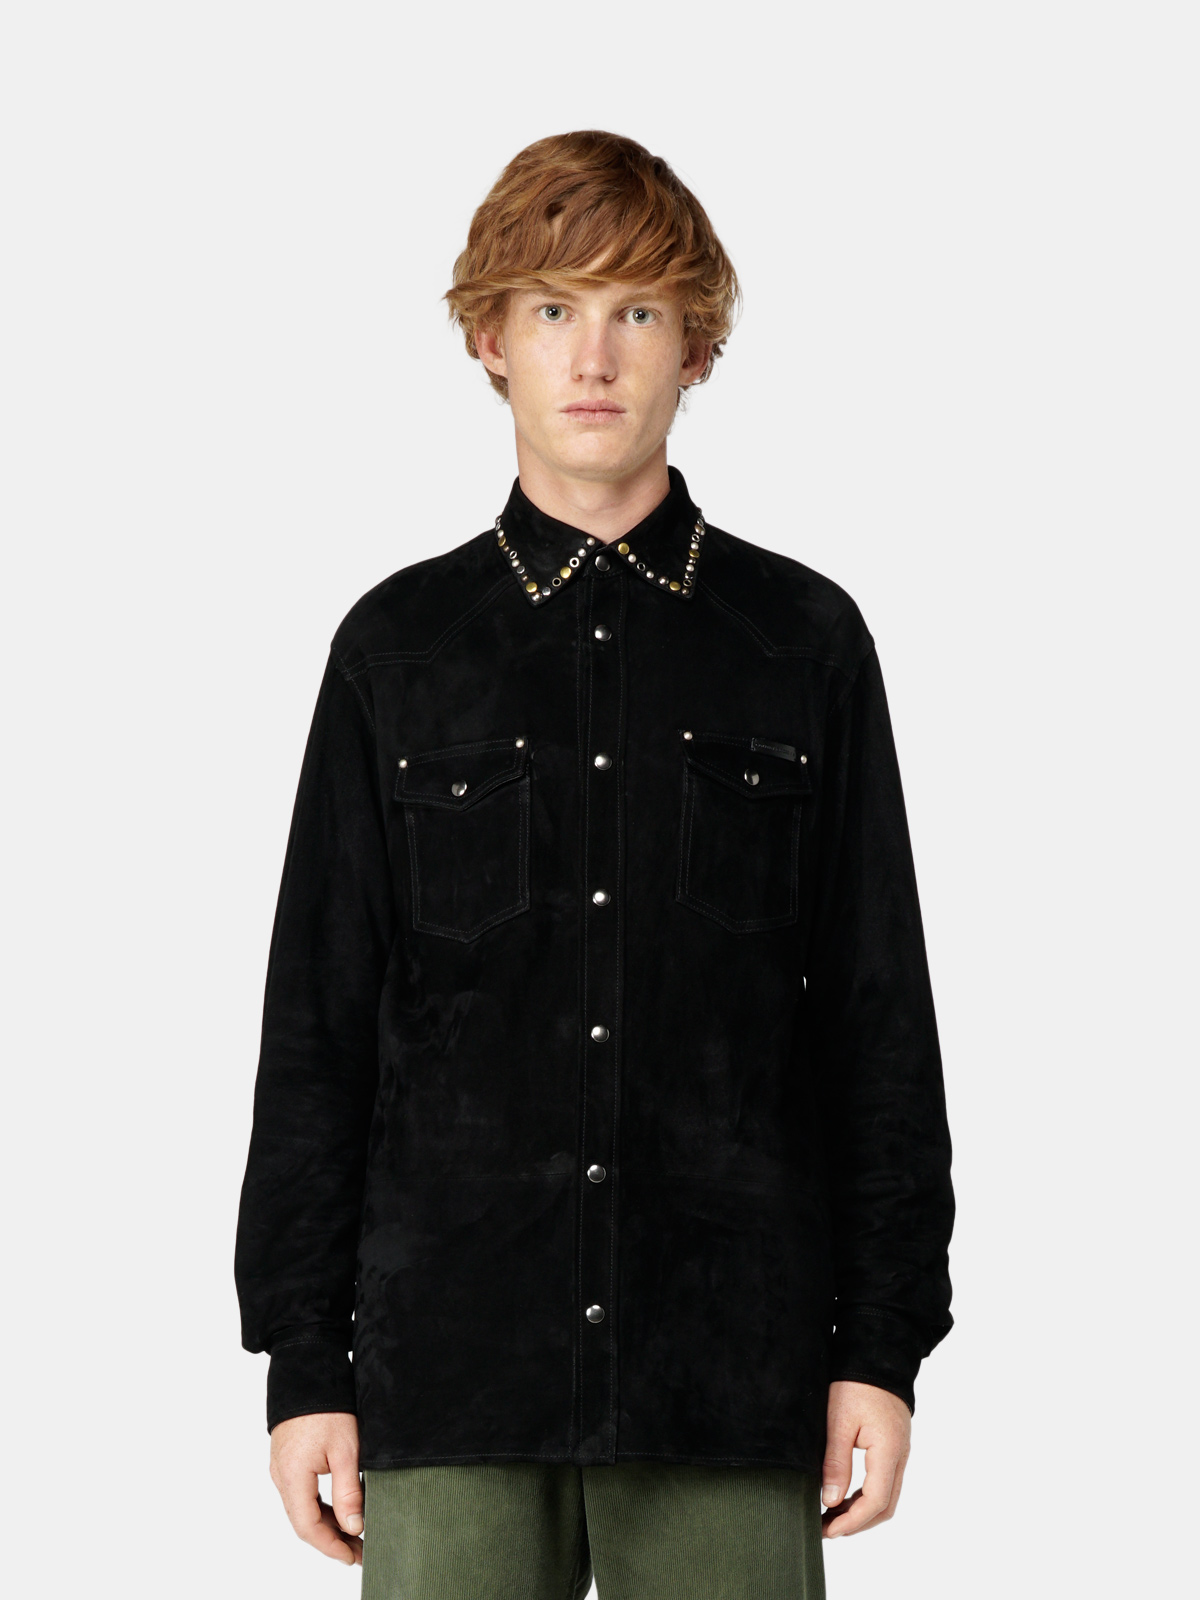 Golden Goose - Axel shirt in suede leather with studs in